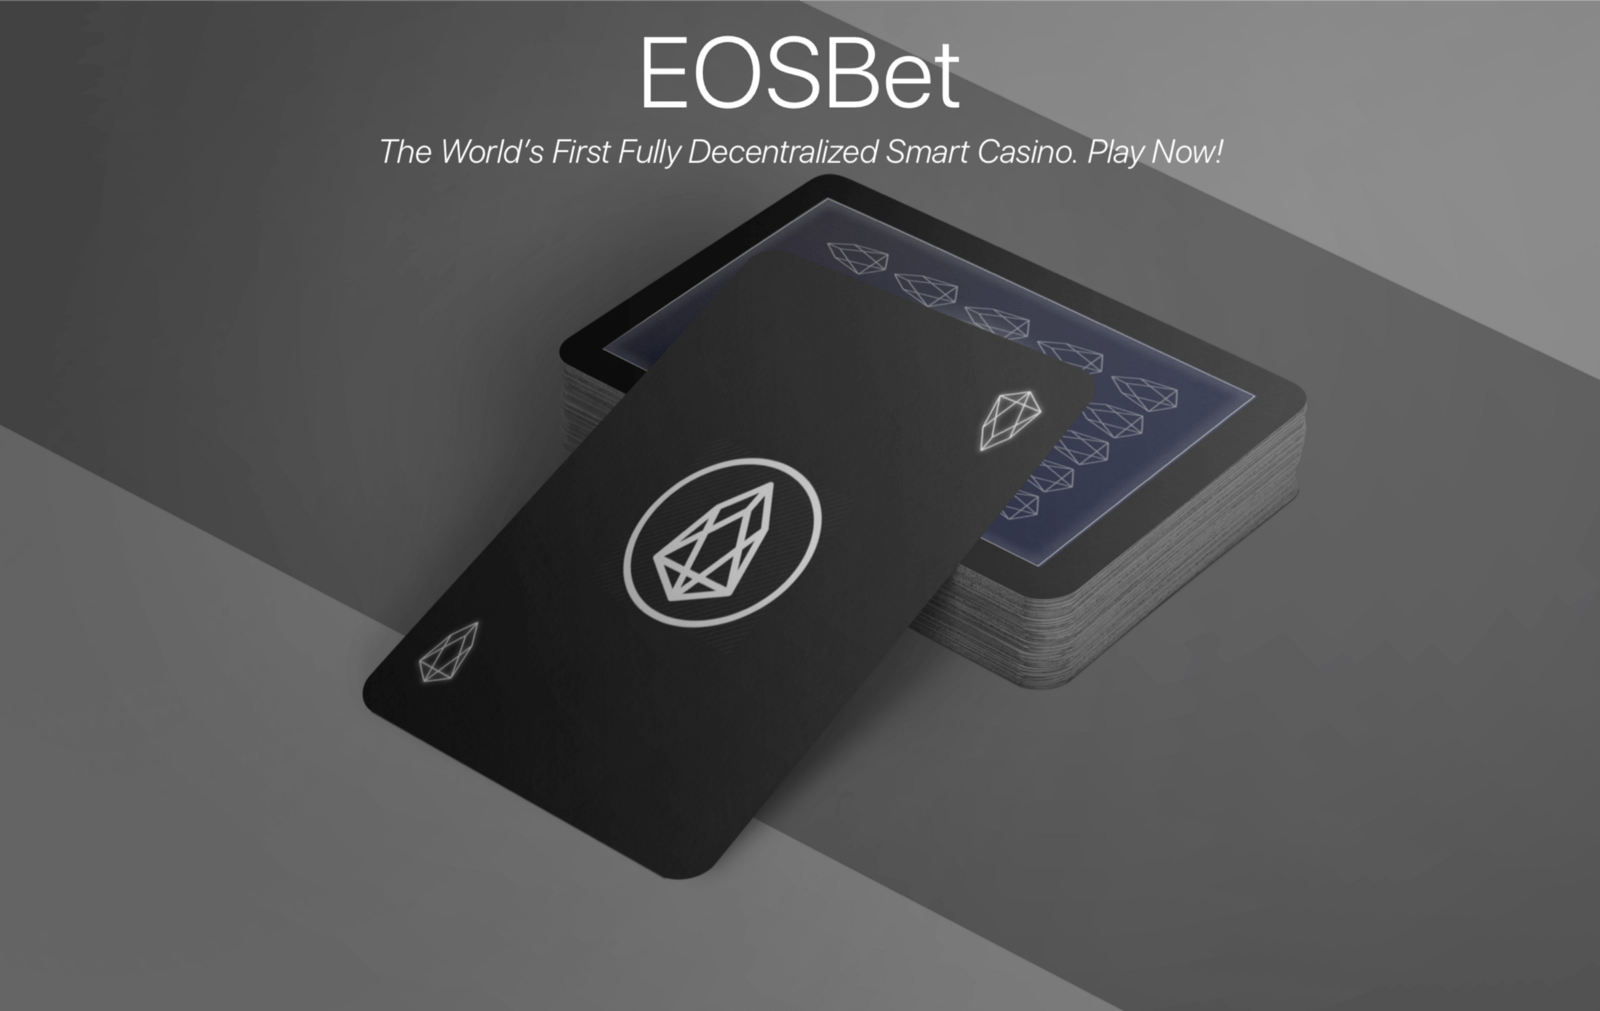 eosbet - Hackers Extracted 40,000 EOS (EOS) From The EOSBet DApp